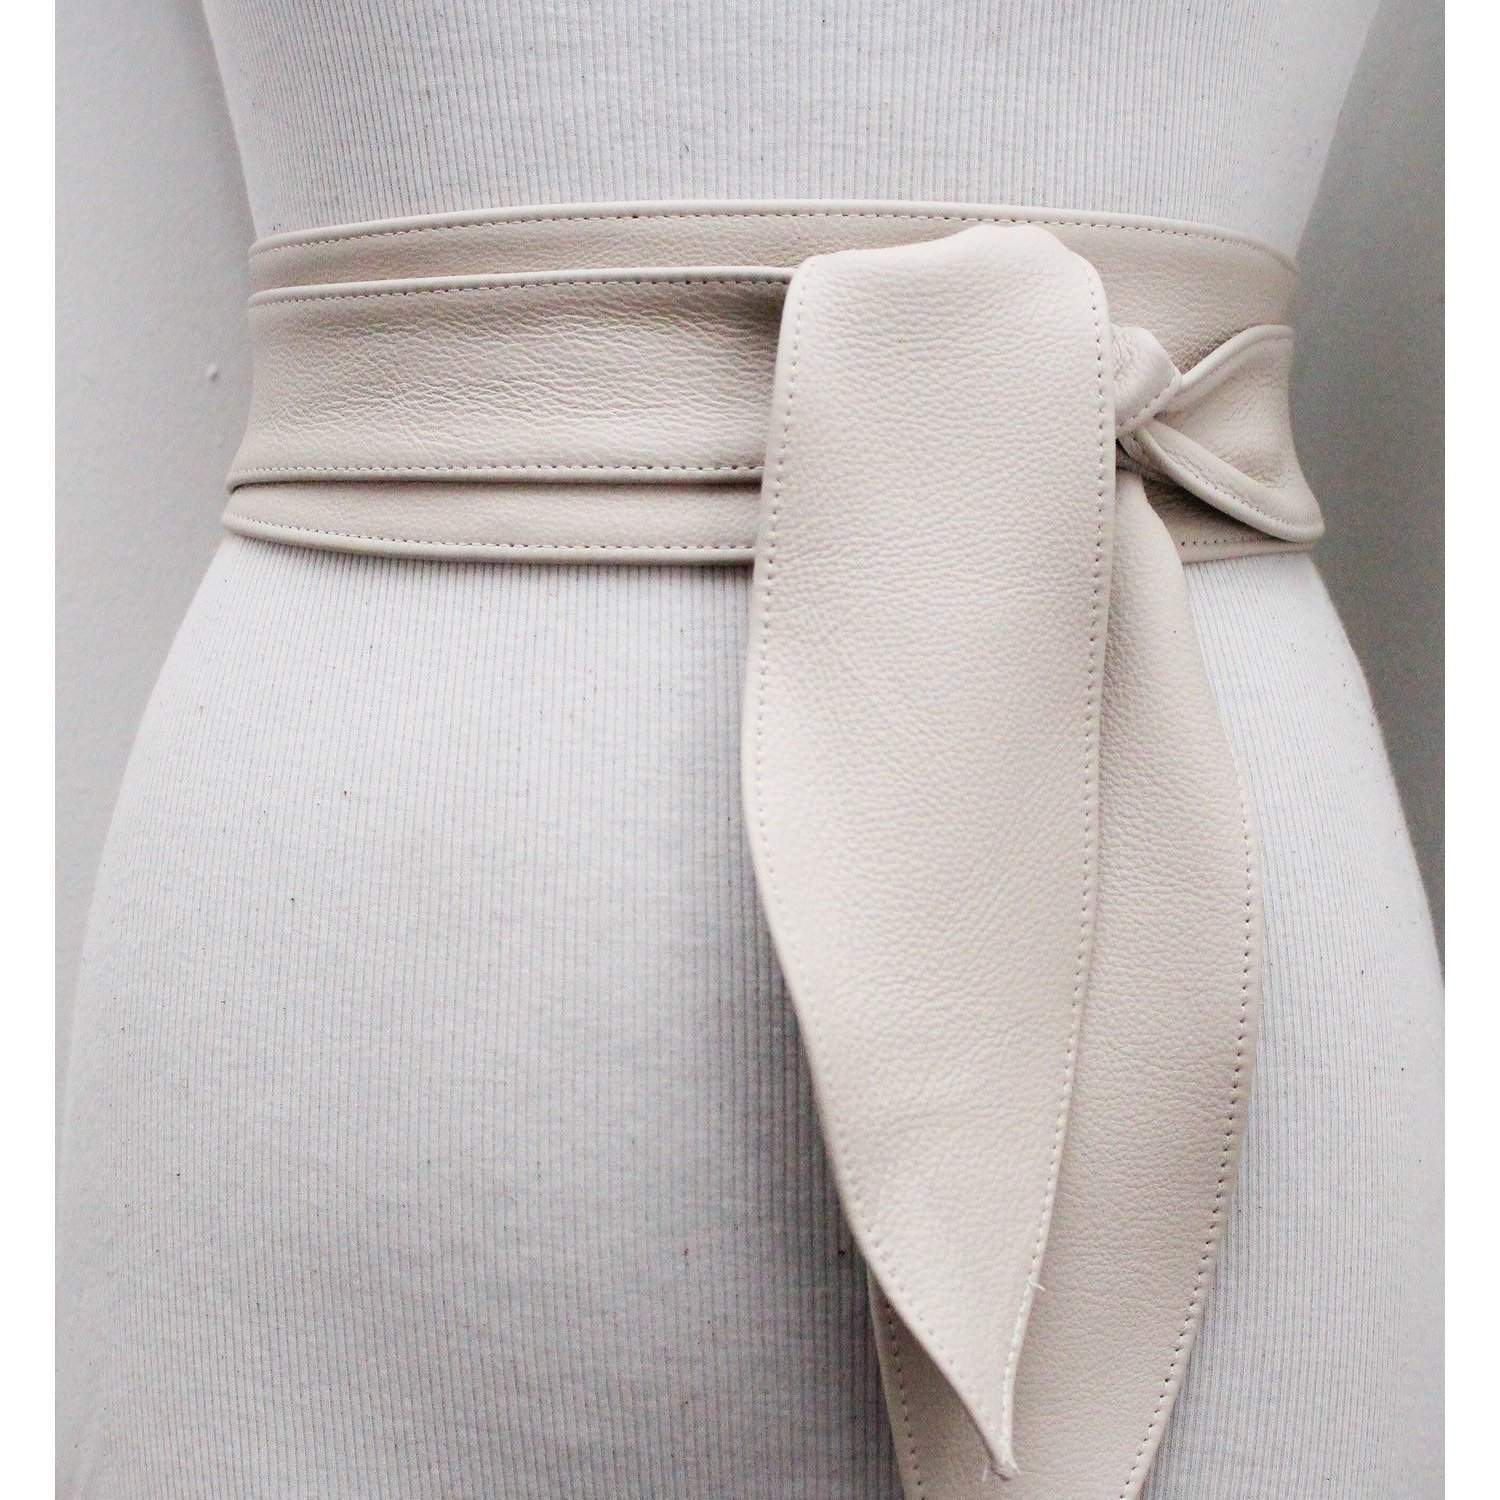 Cream Leather Obi Belt tulip tie| Obi Sash Belt | Leather Tie Belt | Real Leather Belt| Handmade Belt | Plus size belts| various sizes - loveyaayaa